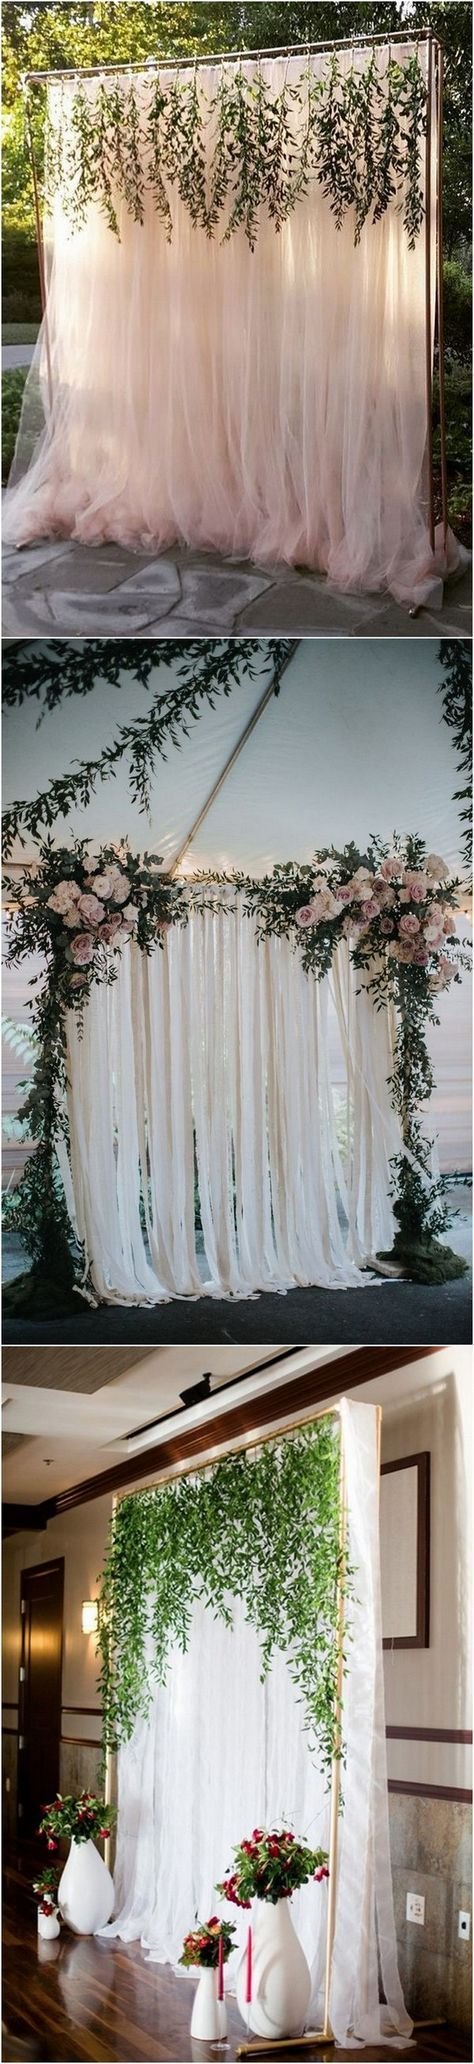 17 DIY Wedding Decoration to Save Budget for Your Big Day https://www.onechitecture.com/2017/10/06/17-diy-wedding-decoration-save-budget-big-day/